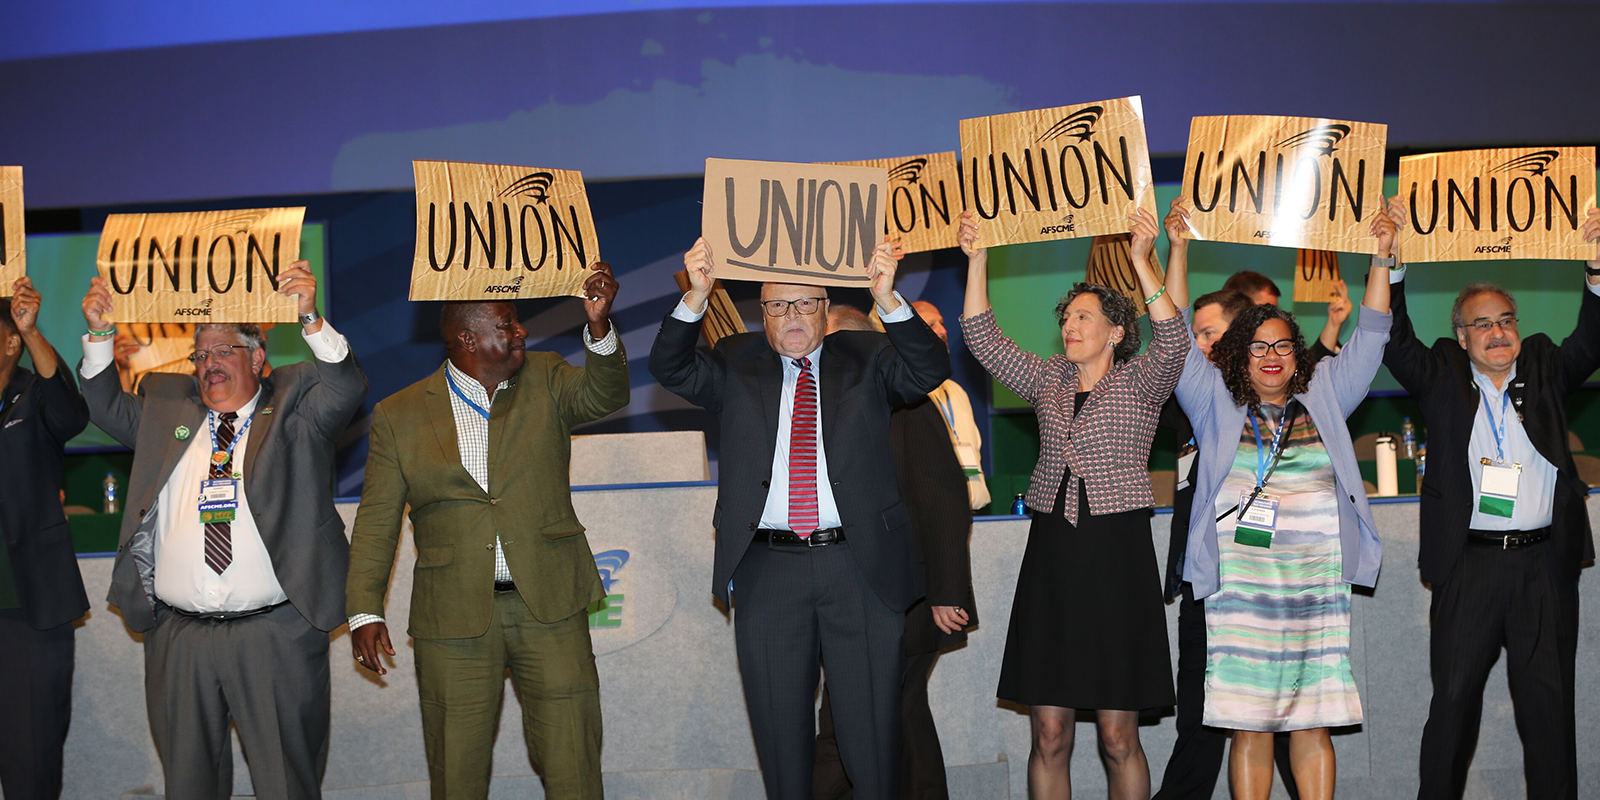 Lee Saunders, Elissa McBride and other union members hold up Union signs